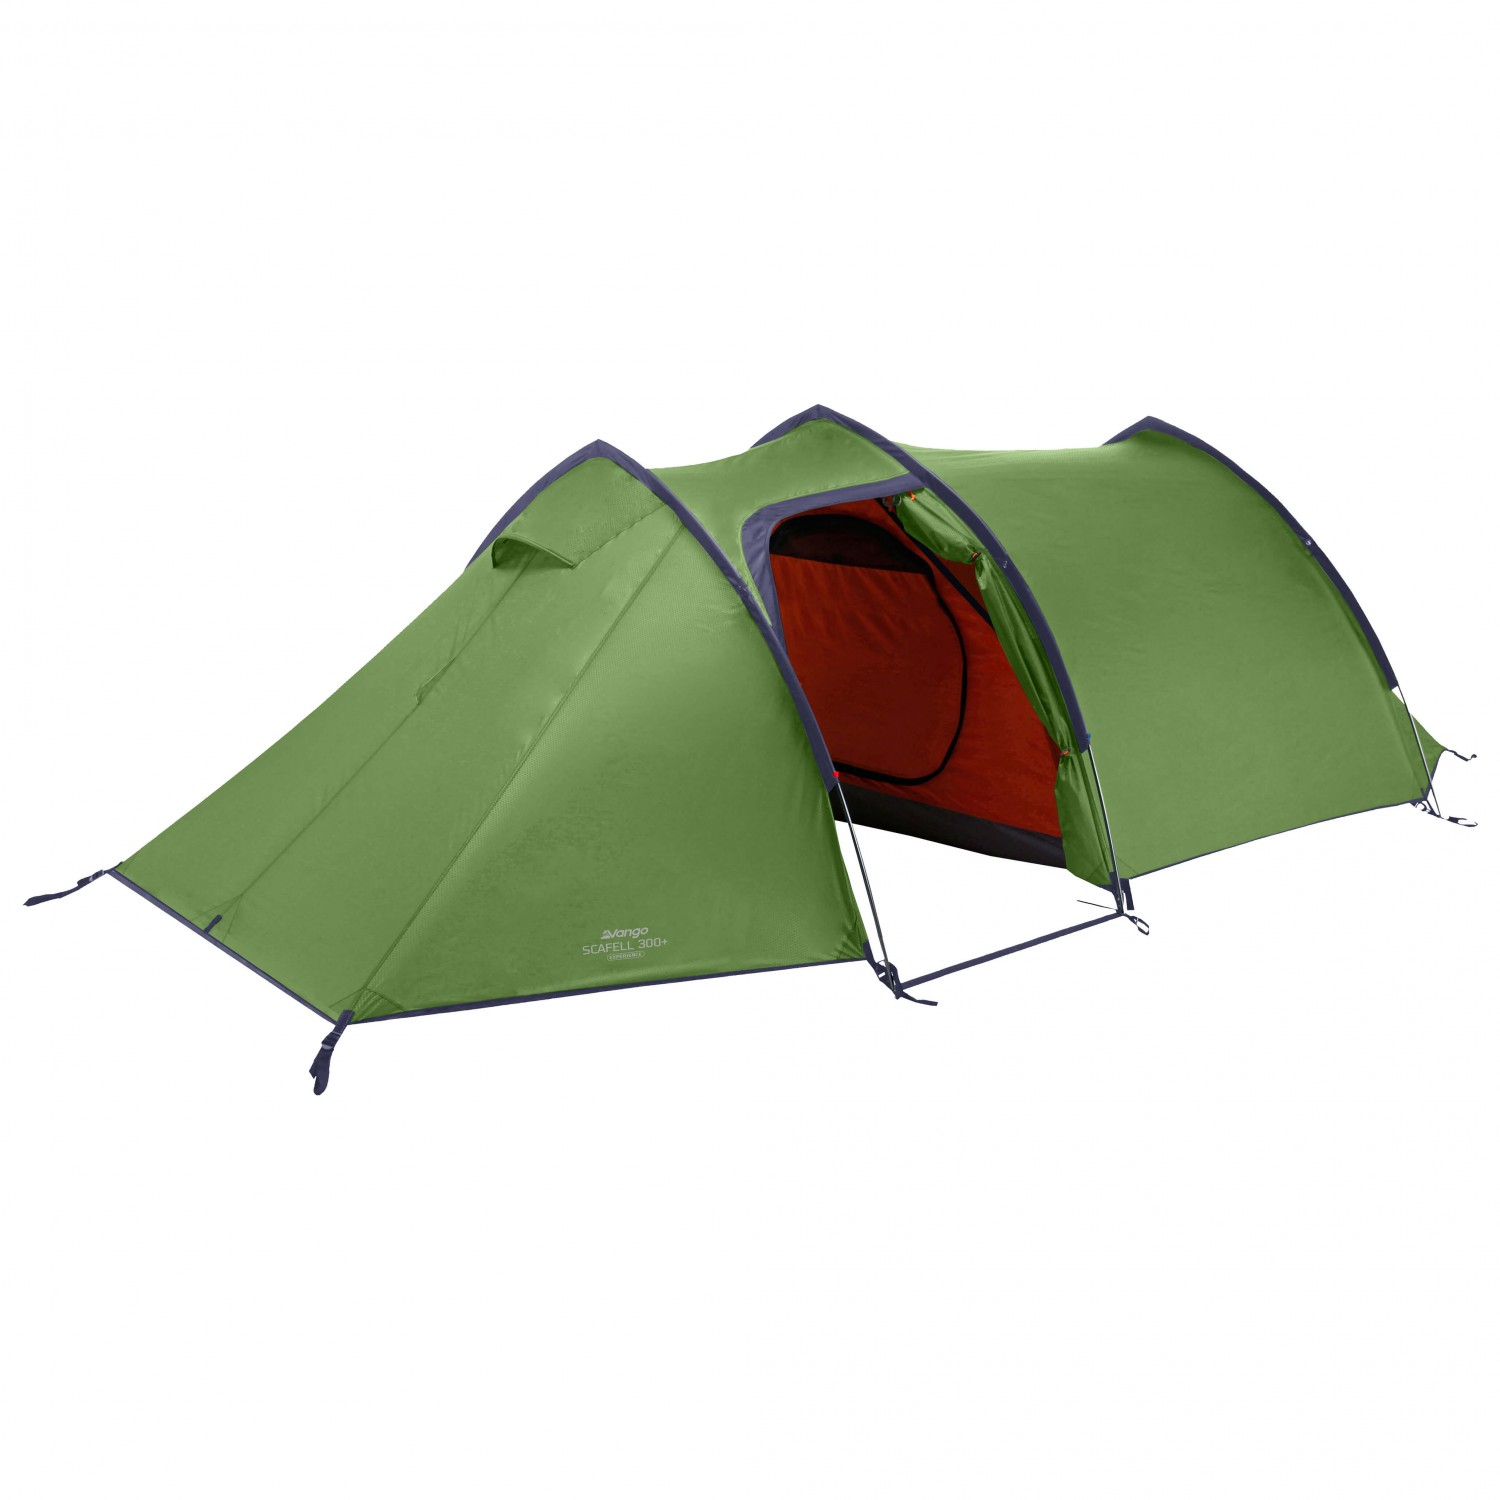 Vango Alliage piquet de tente 19 cm x 7 mm